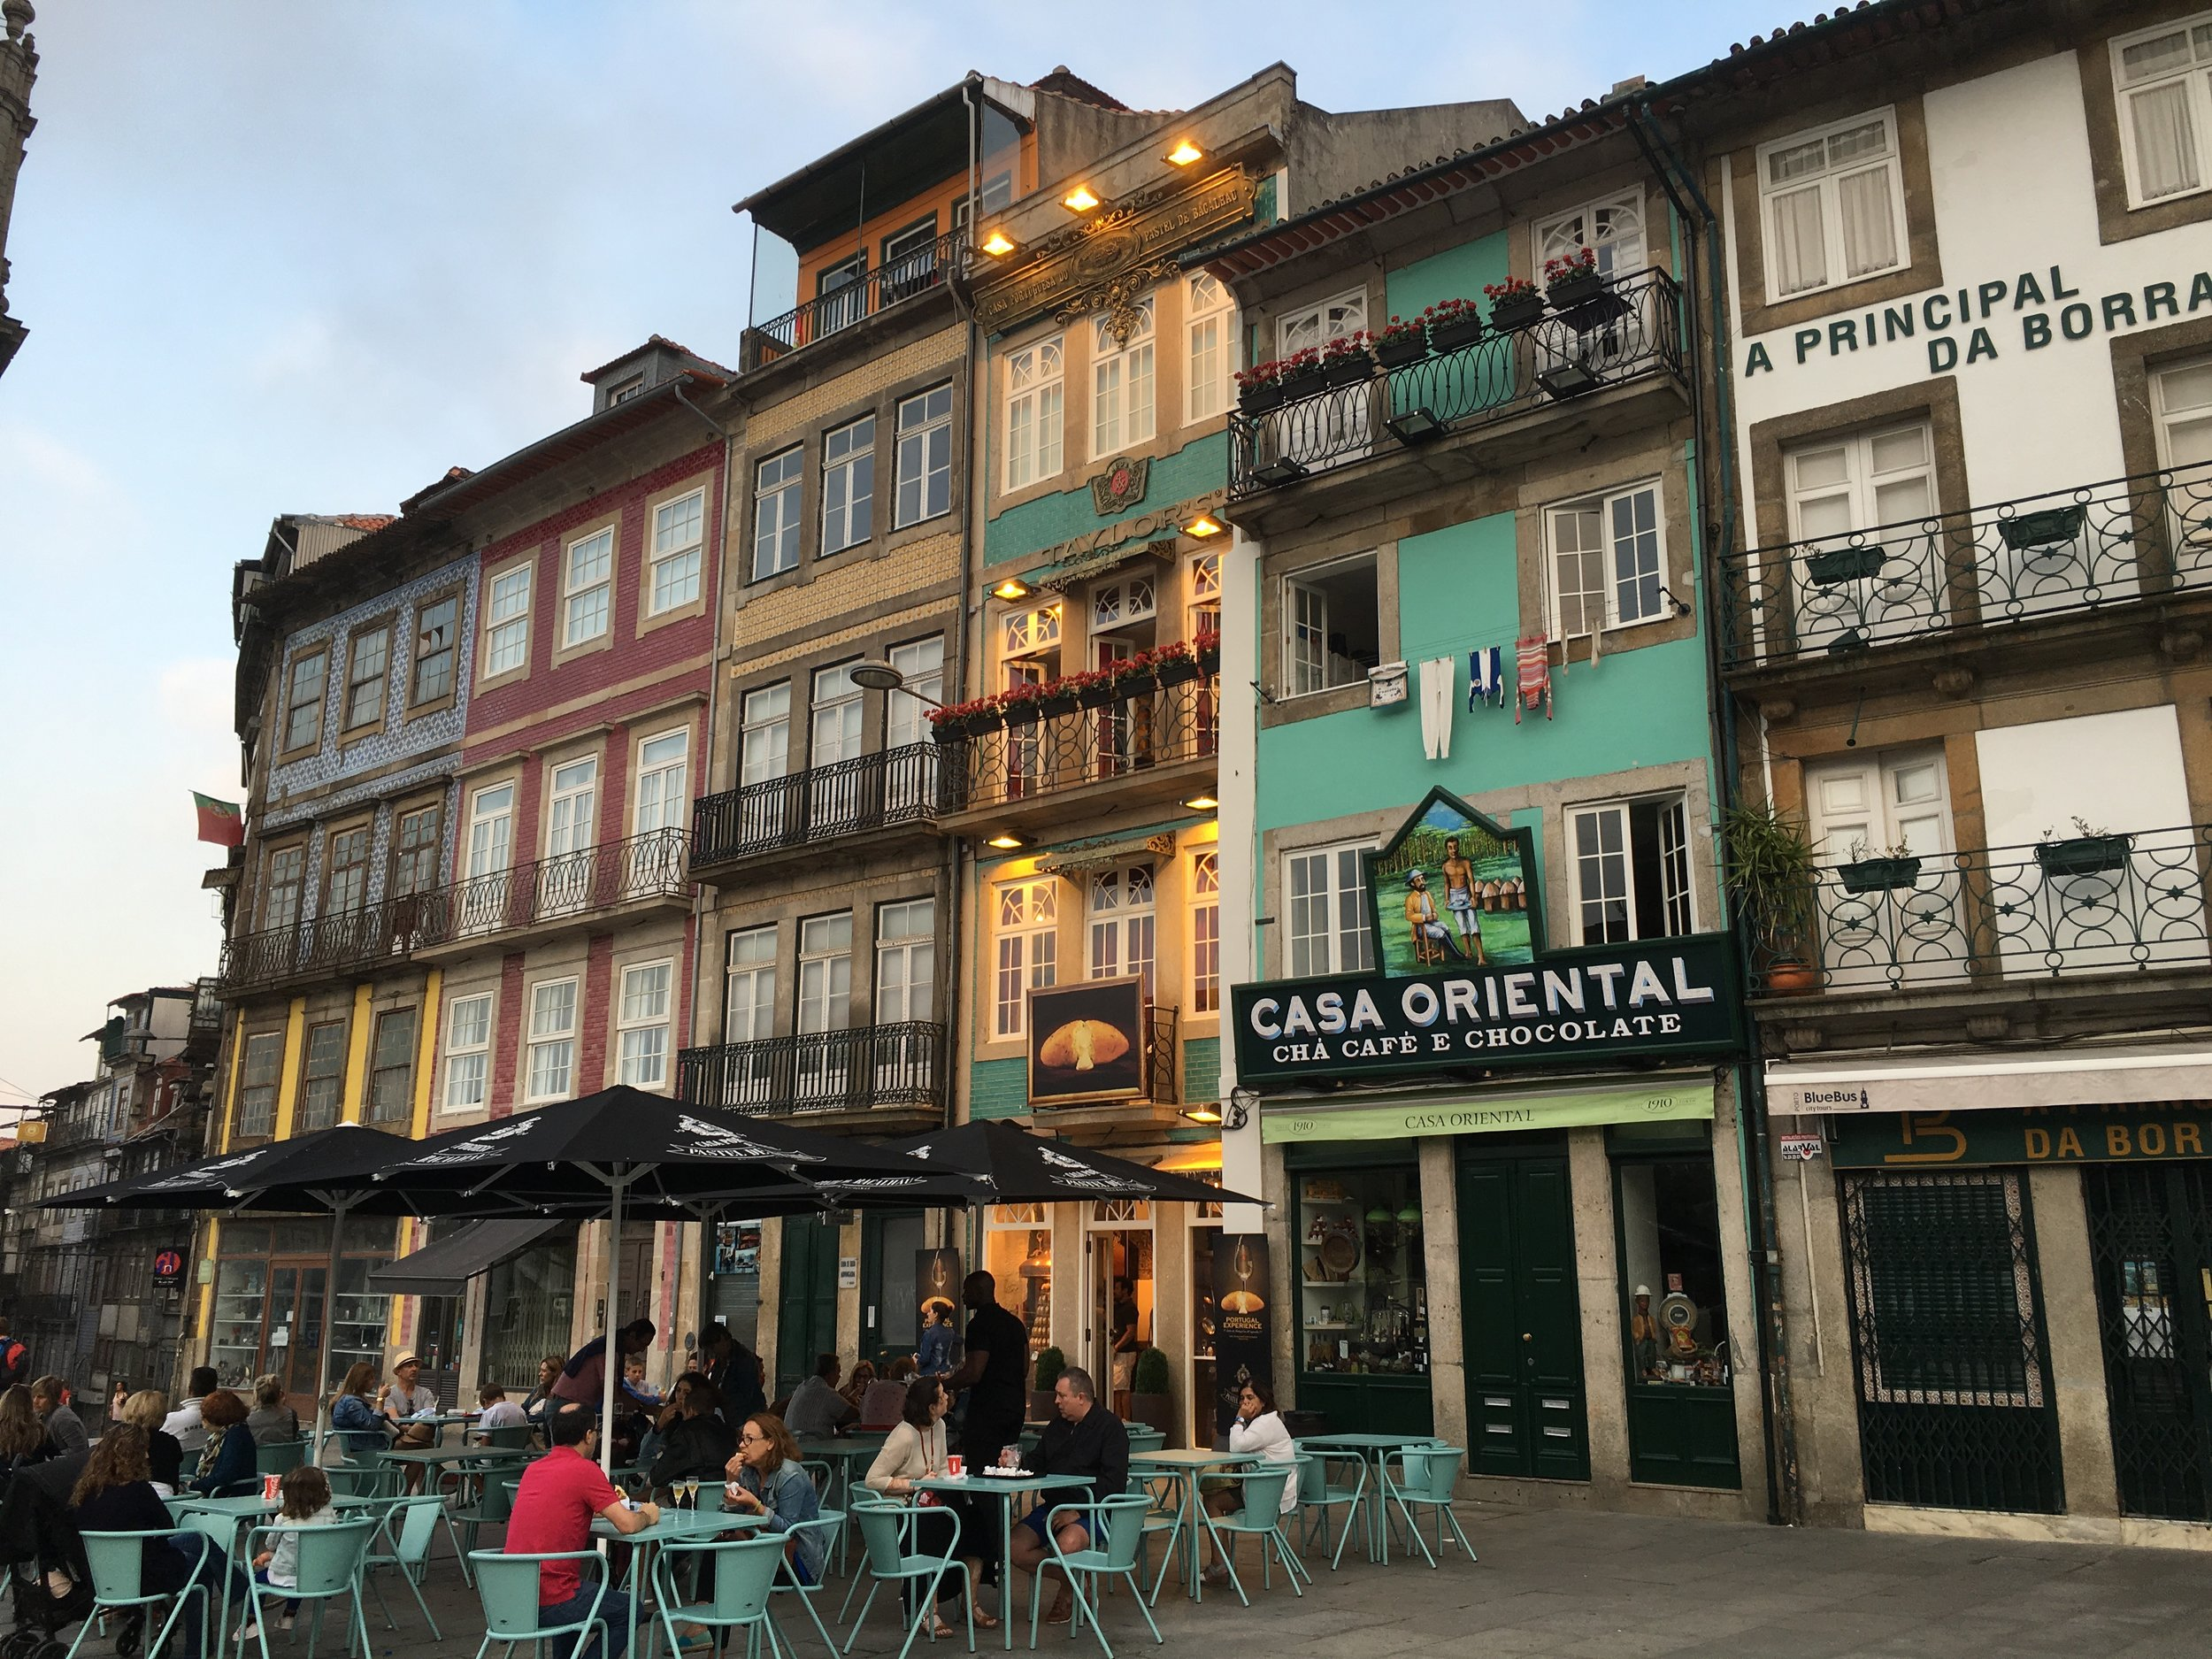 While I was in Porto, I spent 2 days exploring the city itself and was charmed by the people and the city.